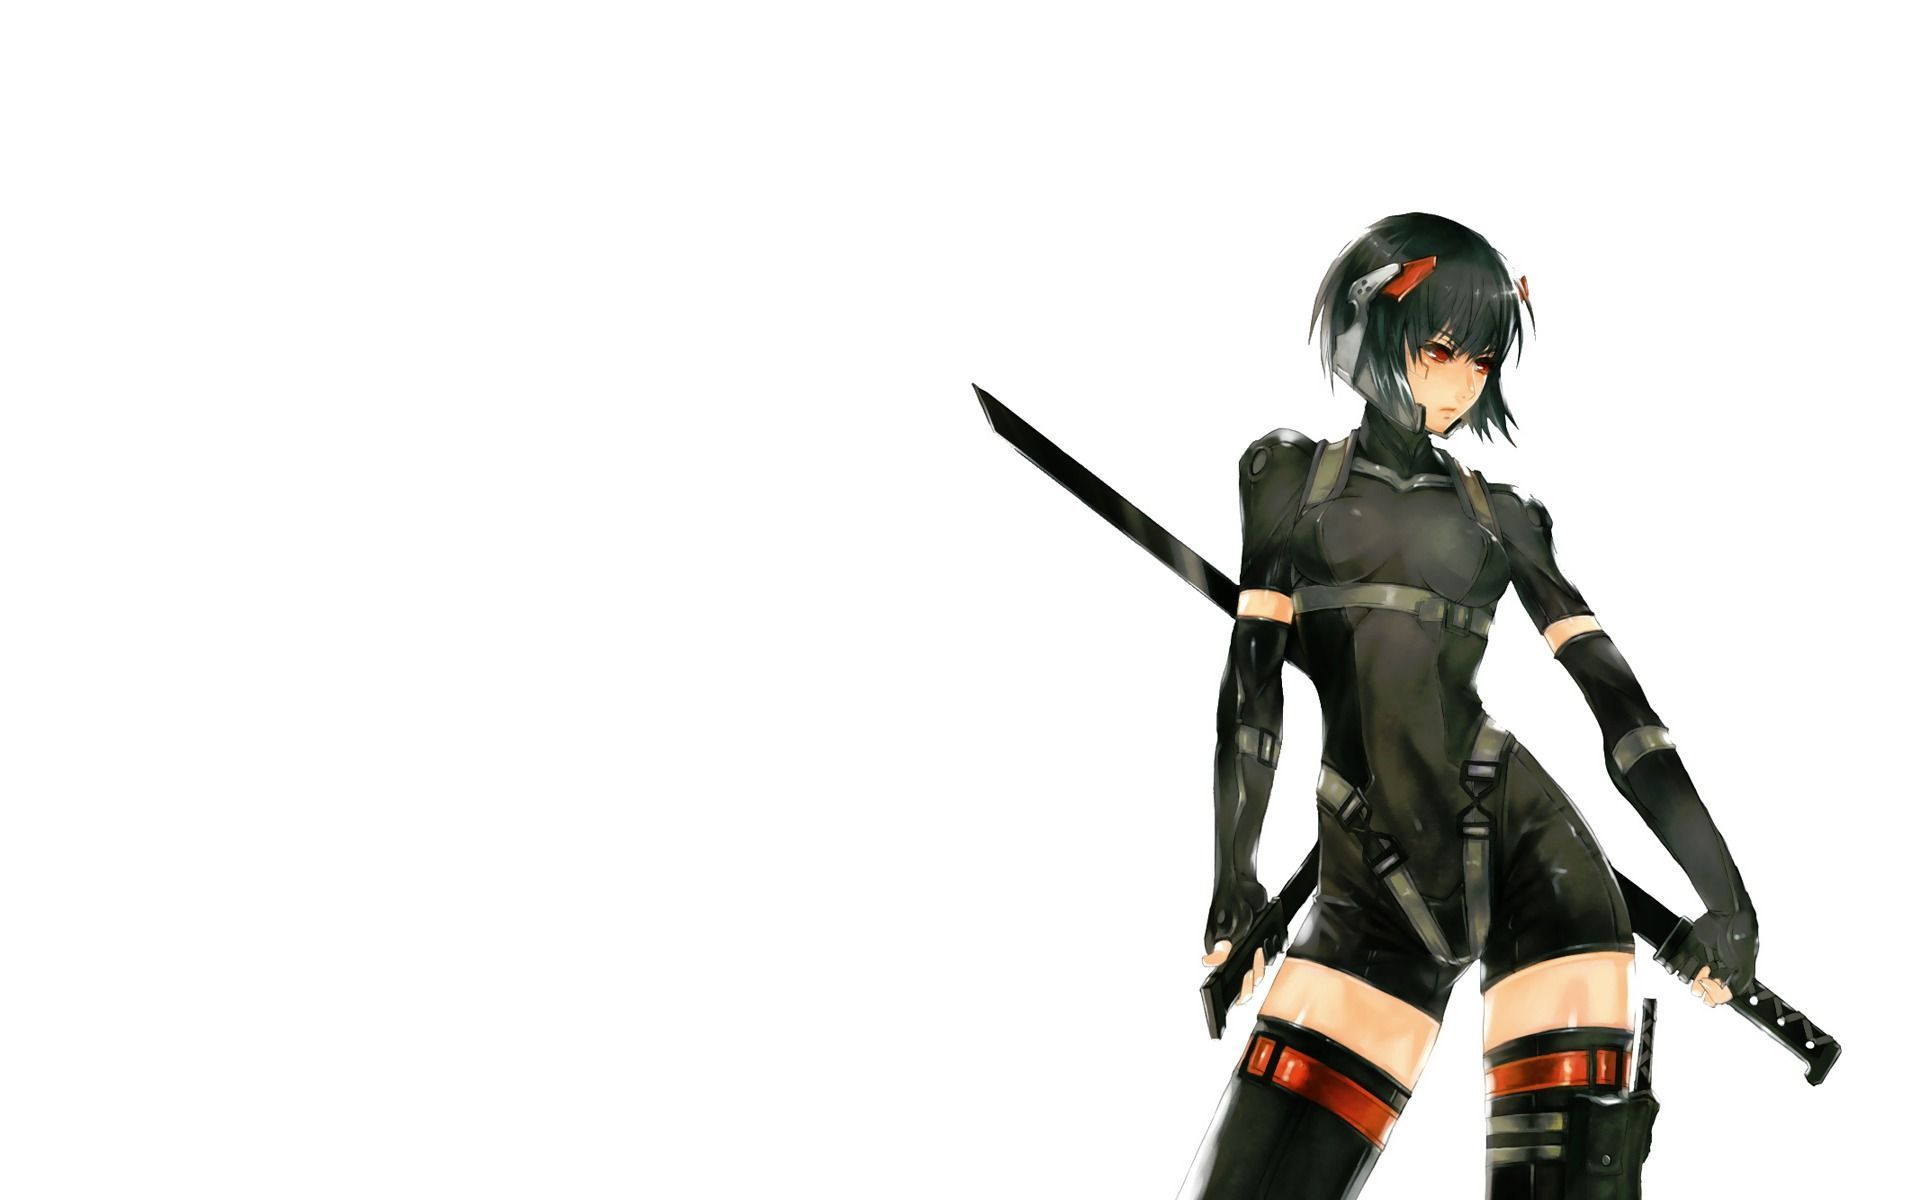 Anime Ninja Girl With Black Hair And Red Eyes  Anime Girl